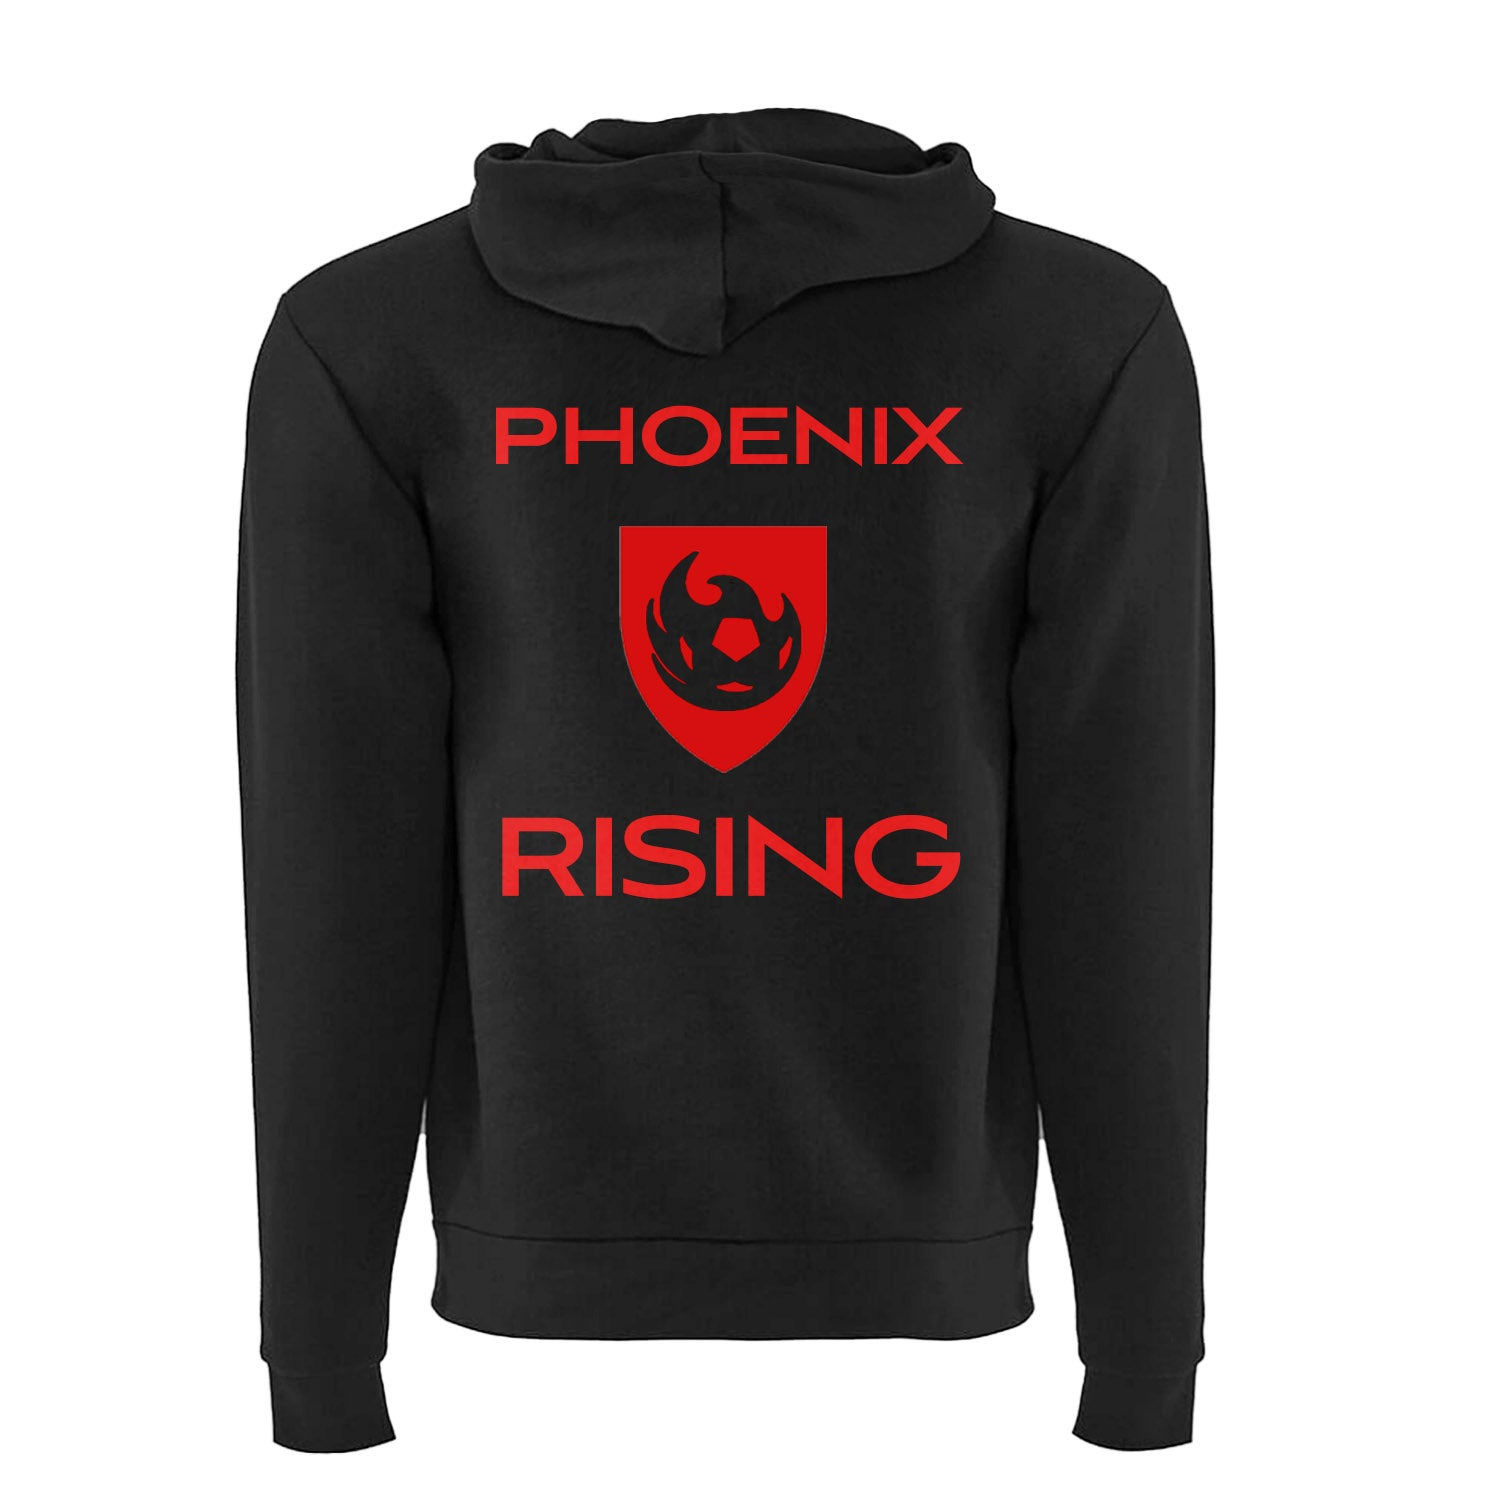 Phoenix Rising Women's Full Zip Hoodie - Black